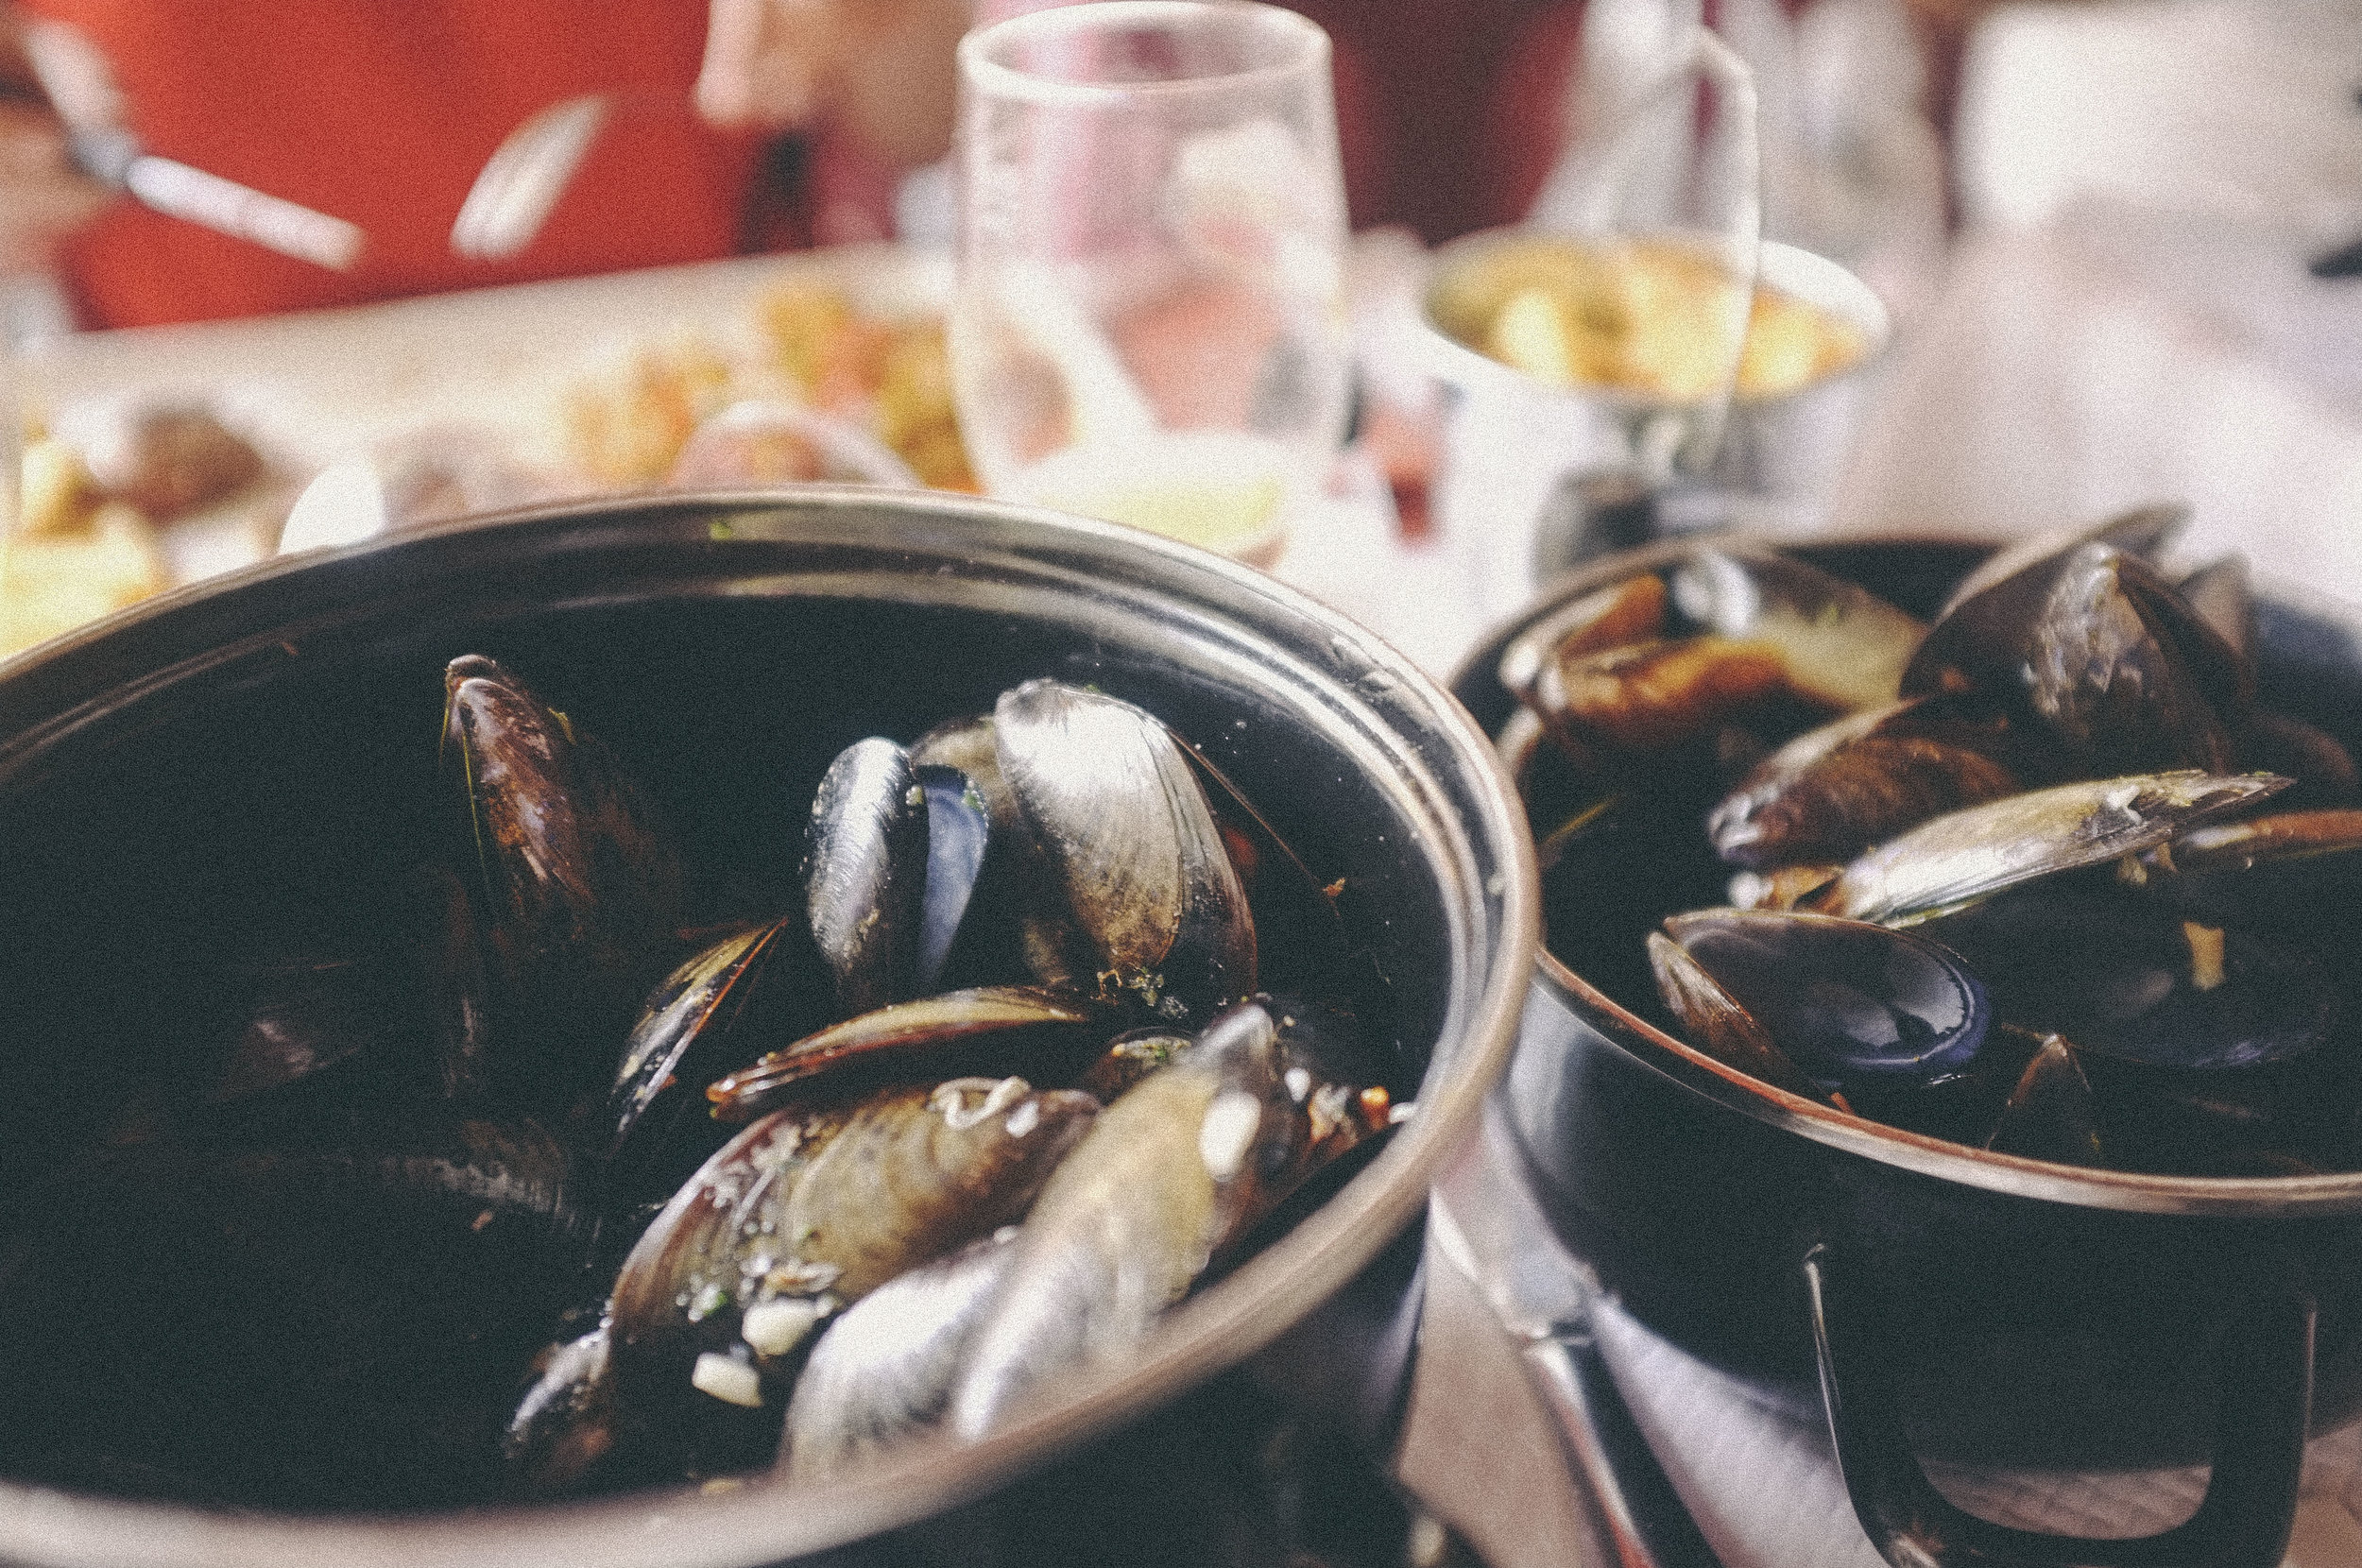 dérrive - Moules et frites in nice, france